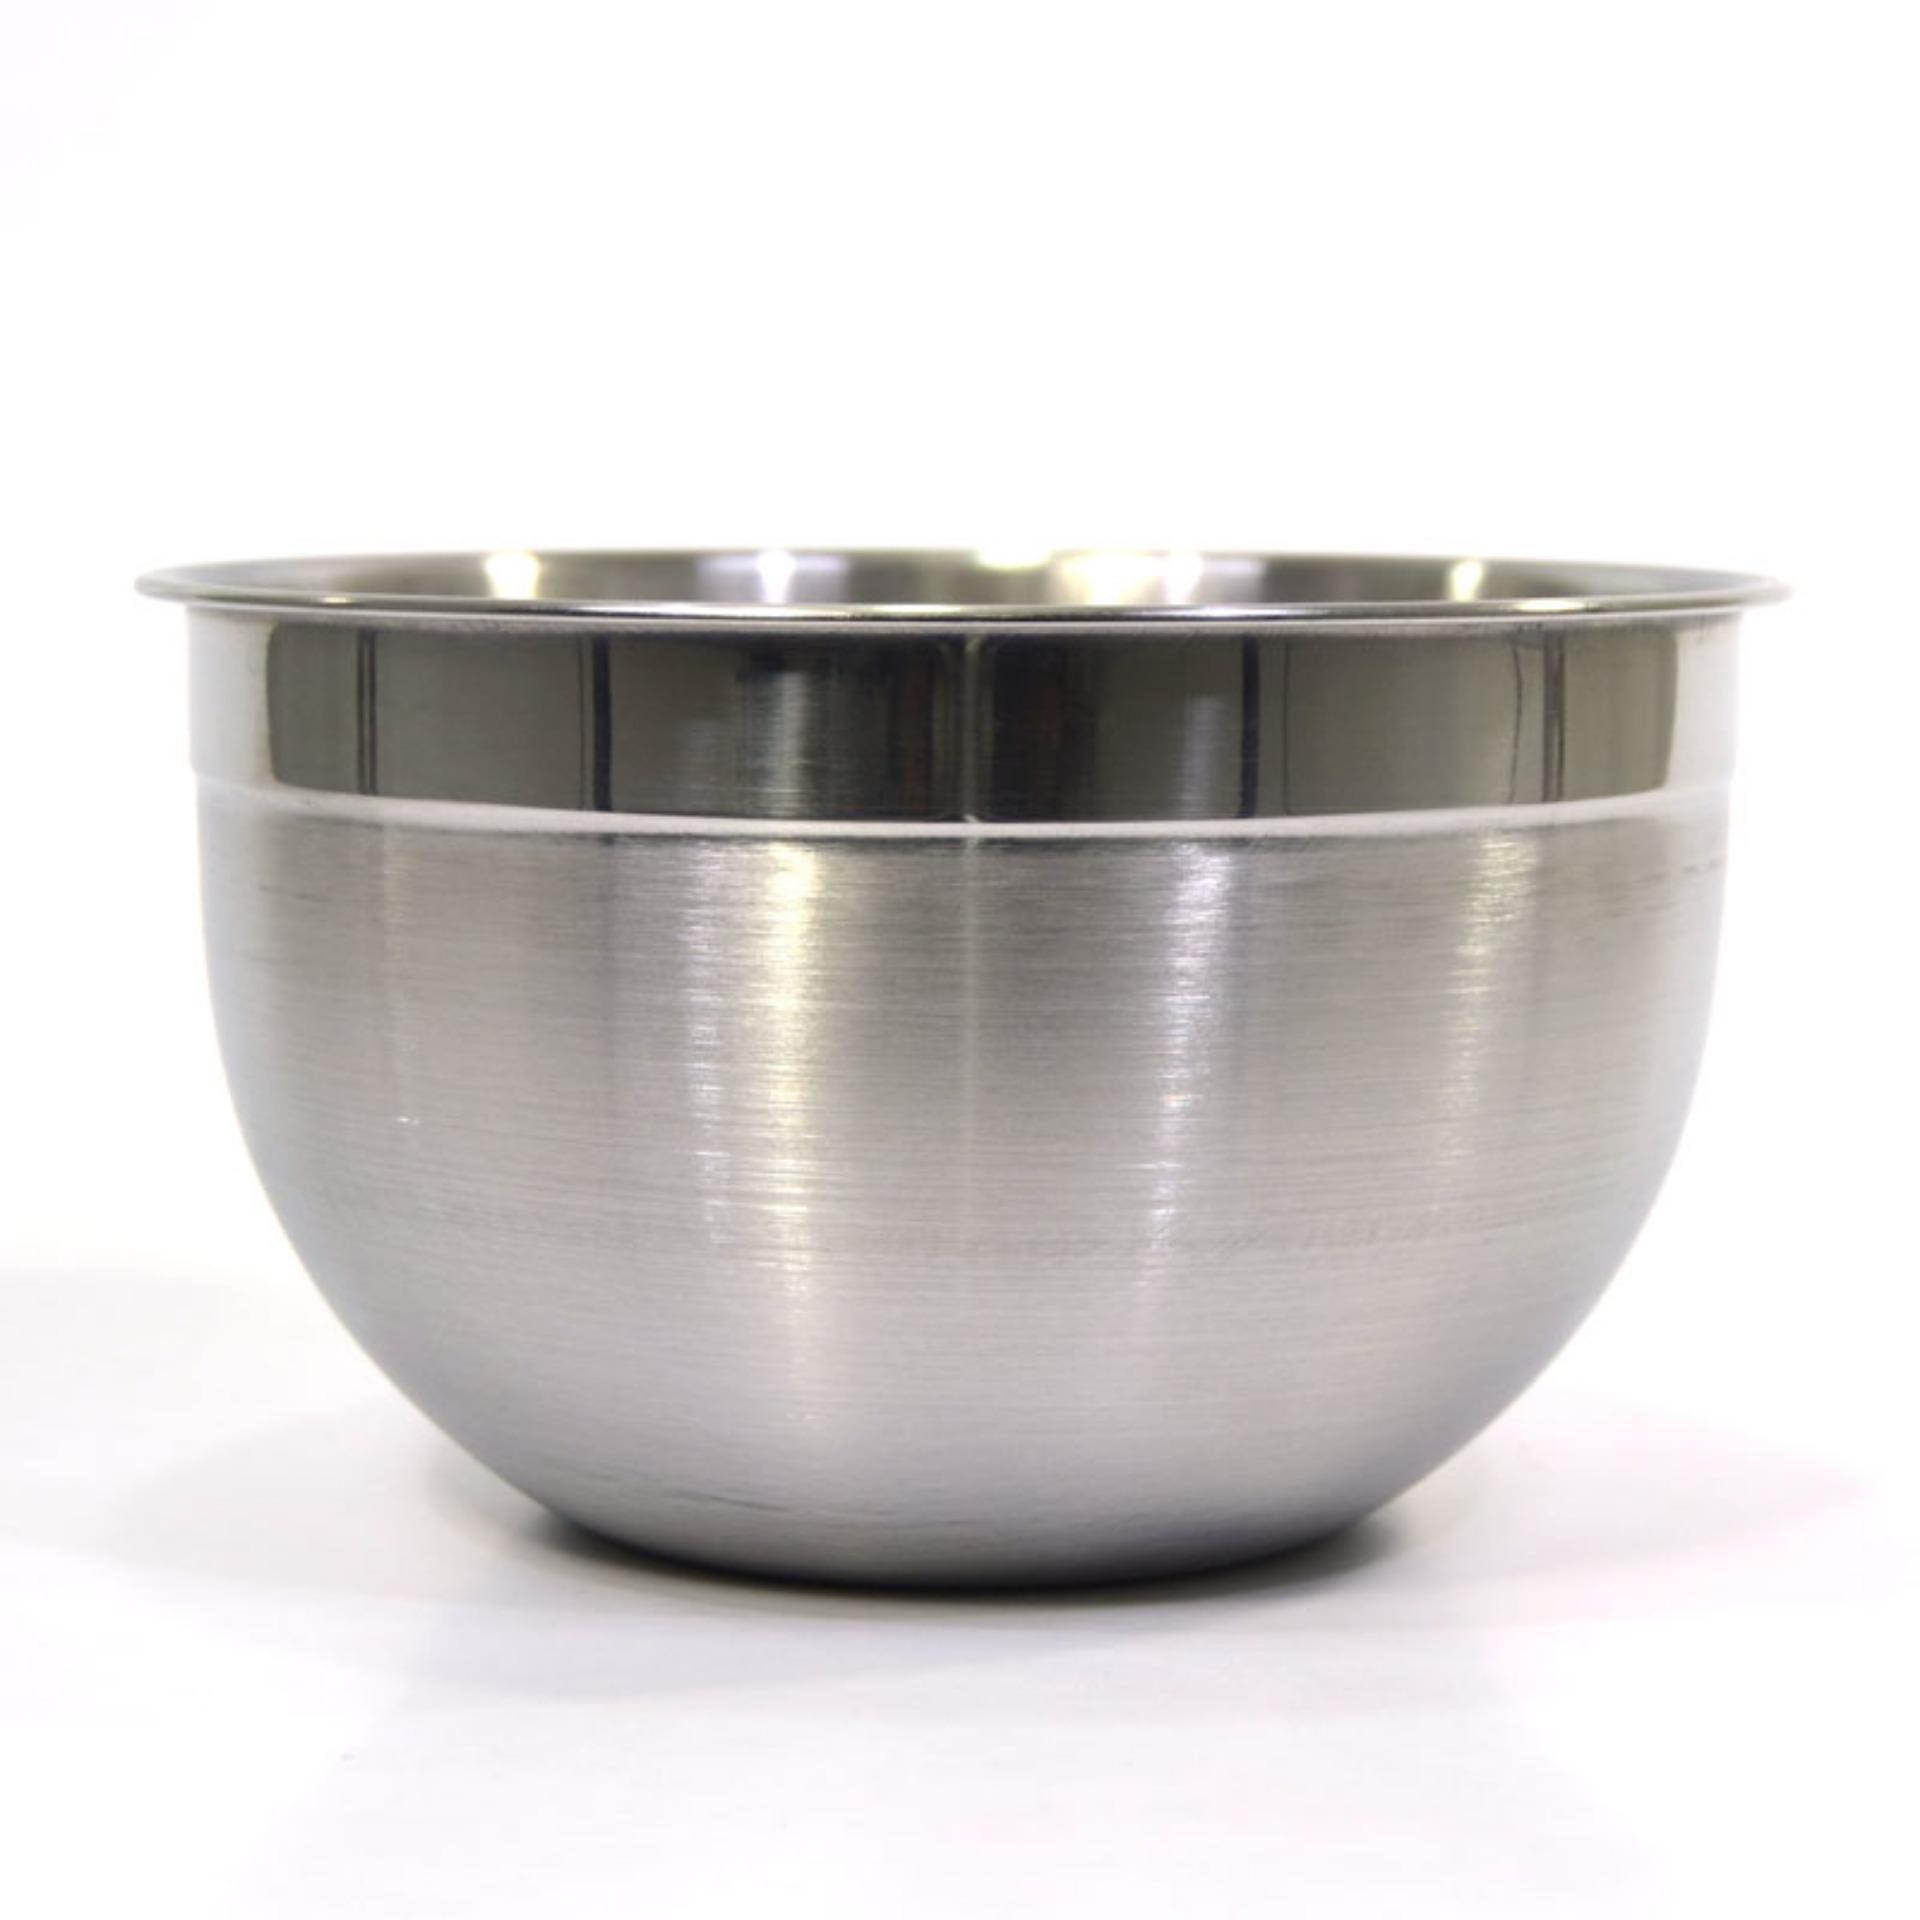 Supra Stainless Steel Mixing Bowl 21 Cm / 3.5 Liter By Bursa Dapur Store.